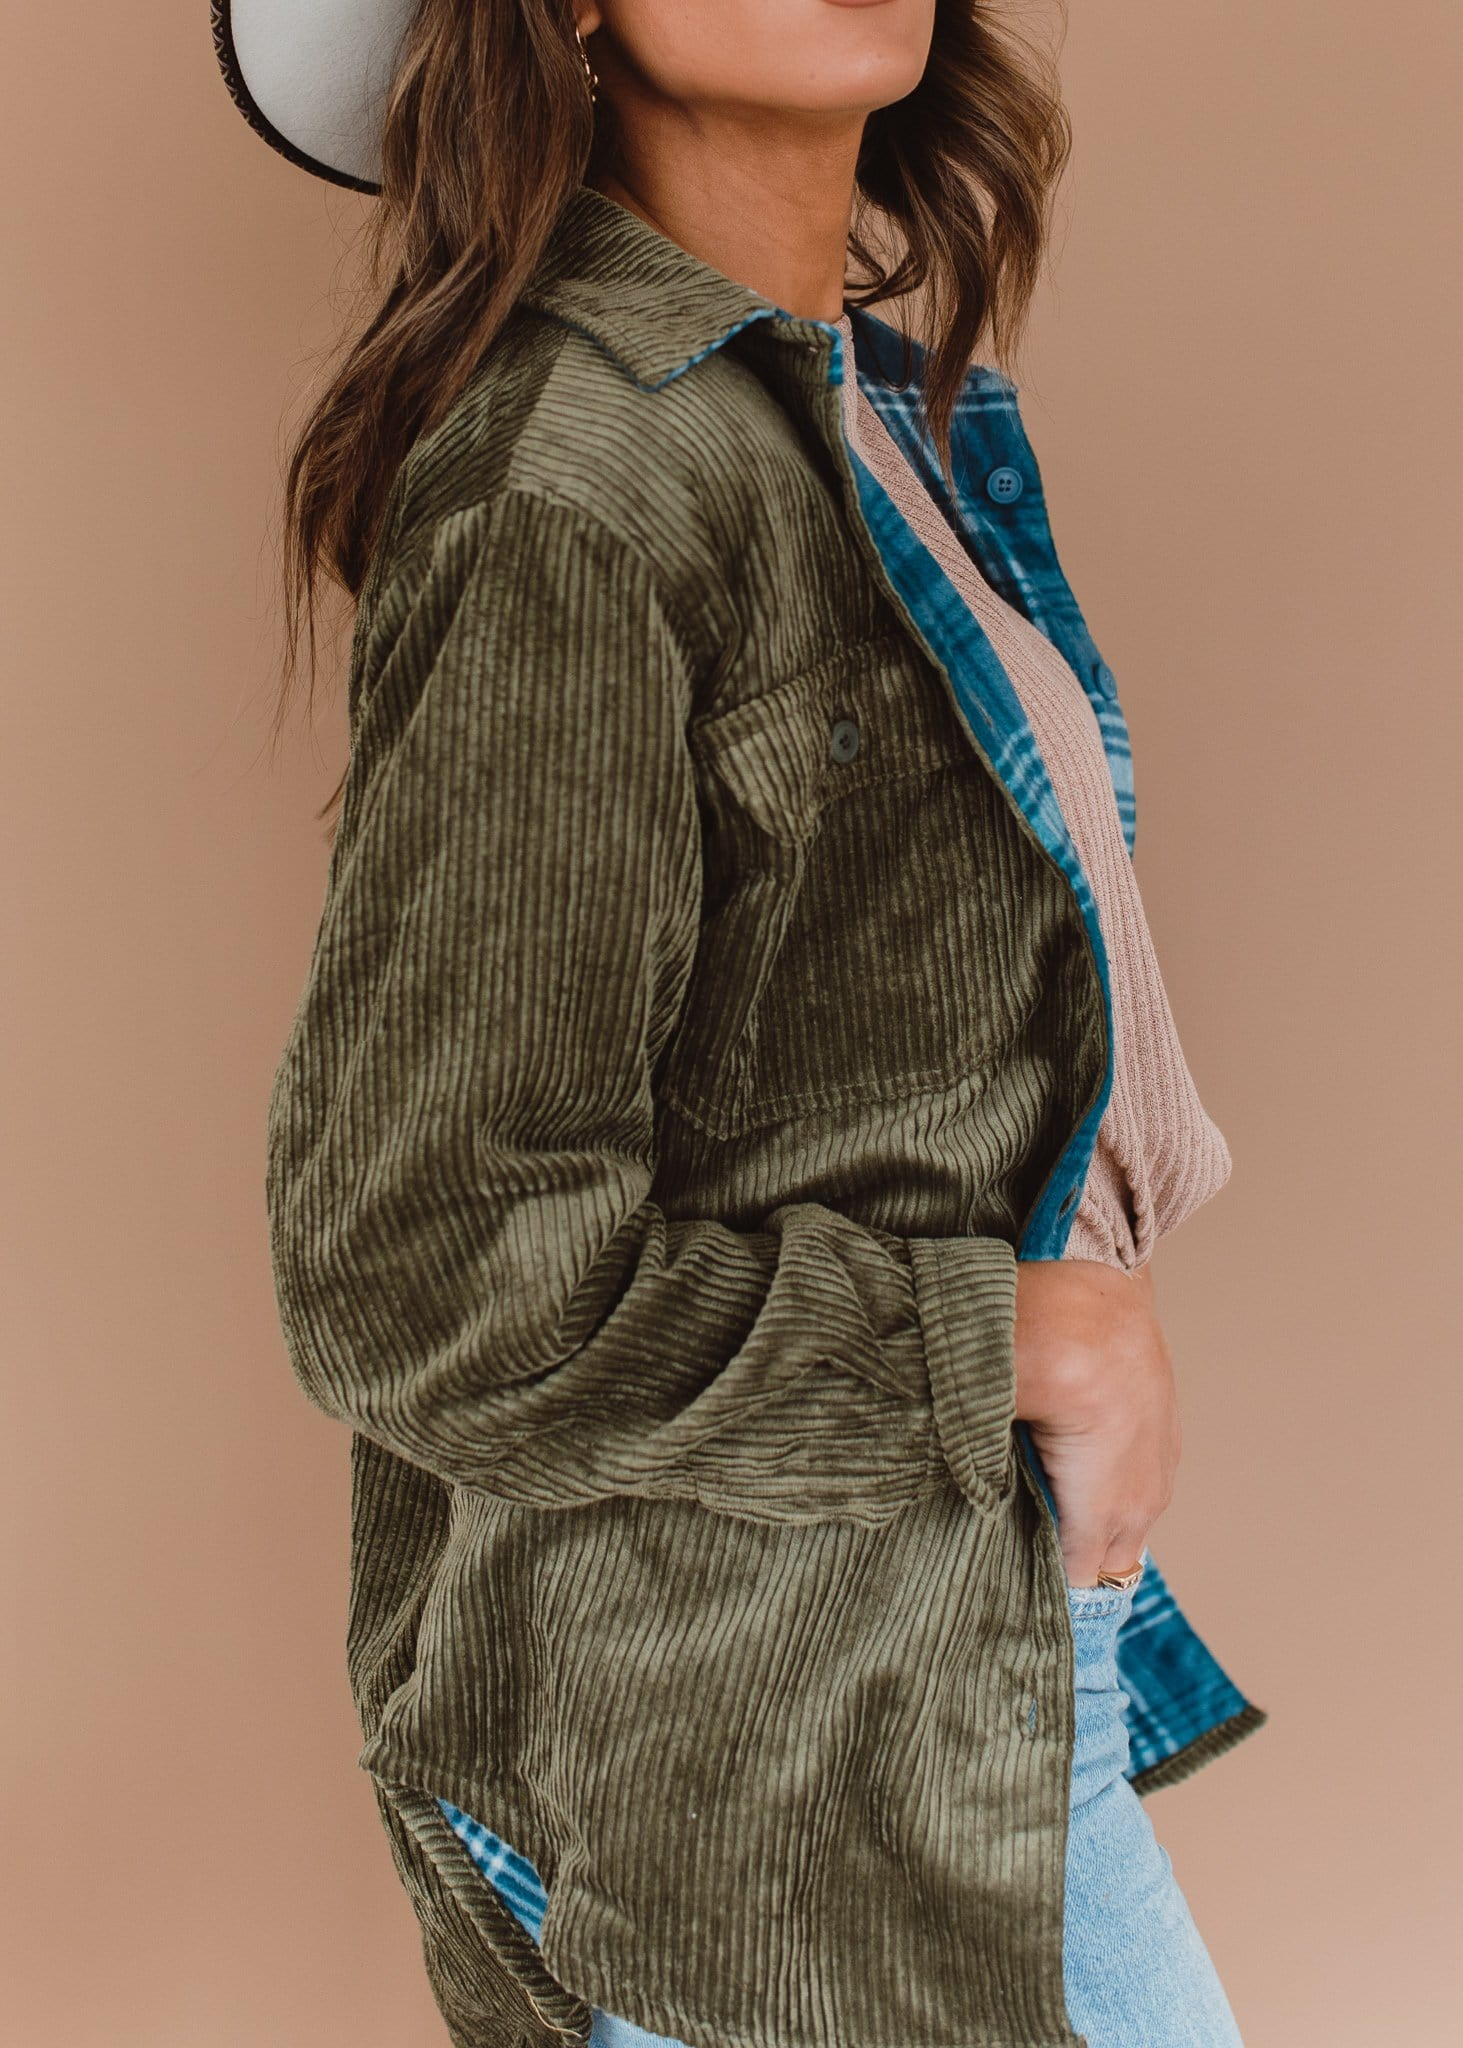 The Ashbury Corduroy Shacket in Olive